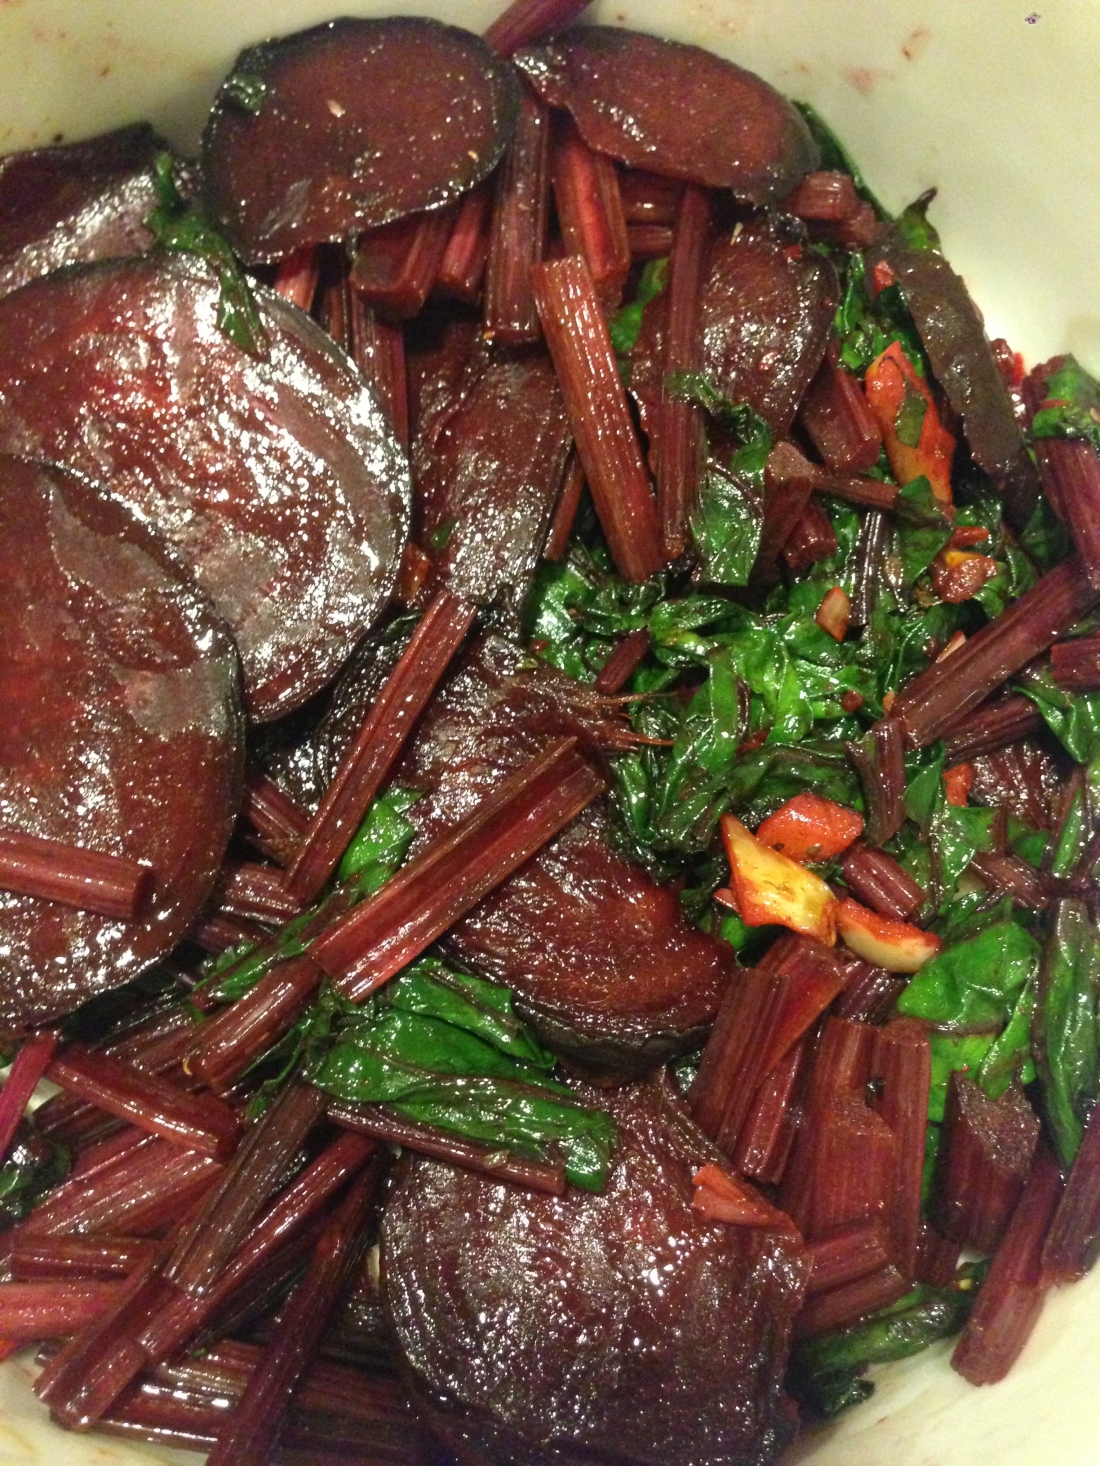 Sautéed Beet Tubers, Stems, and Leaves